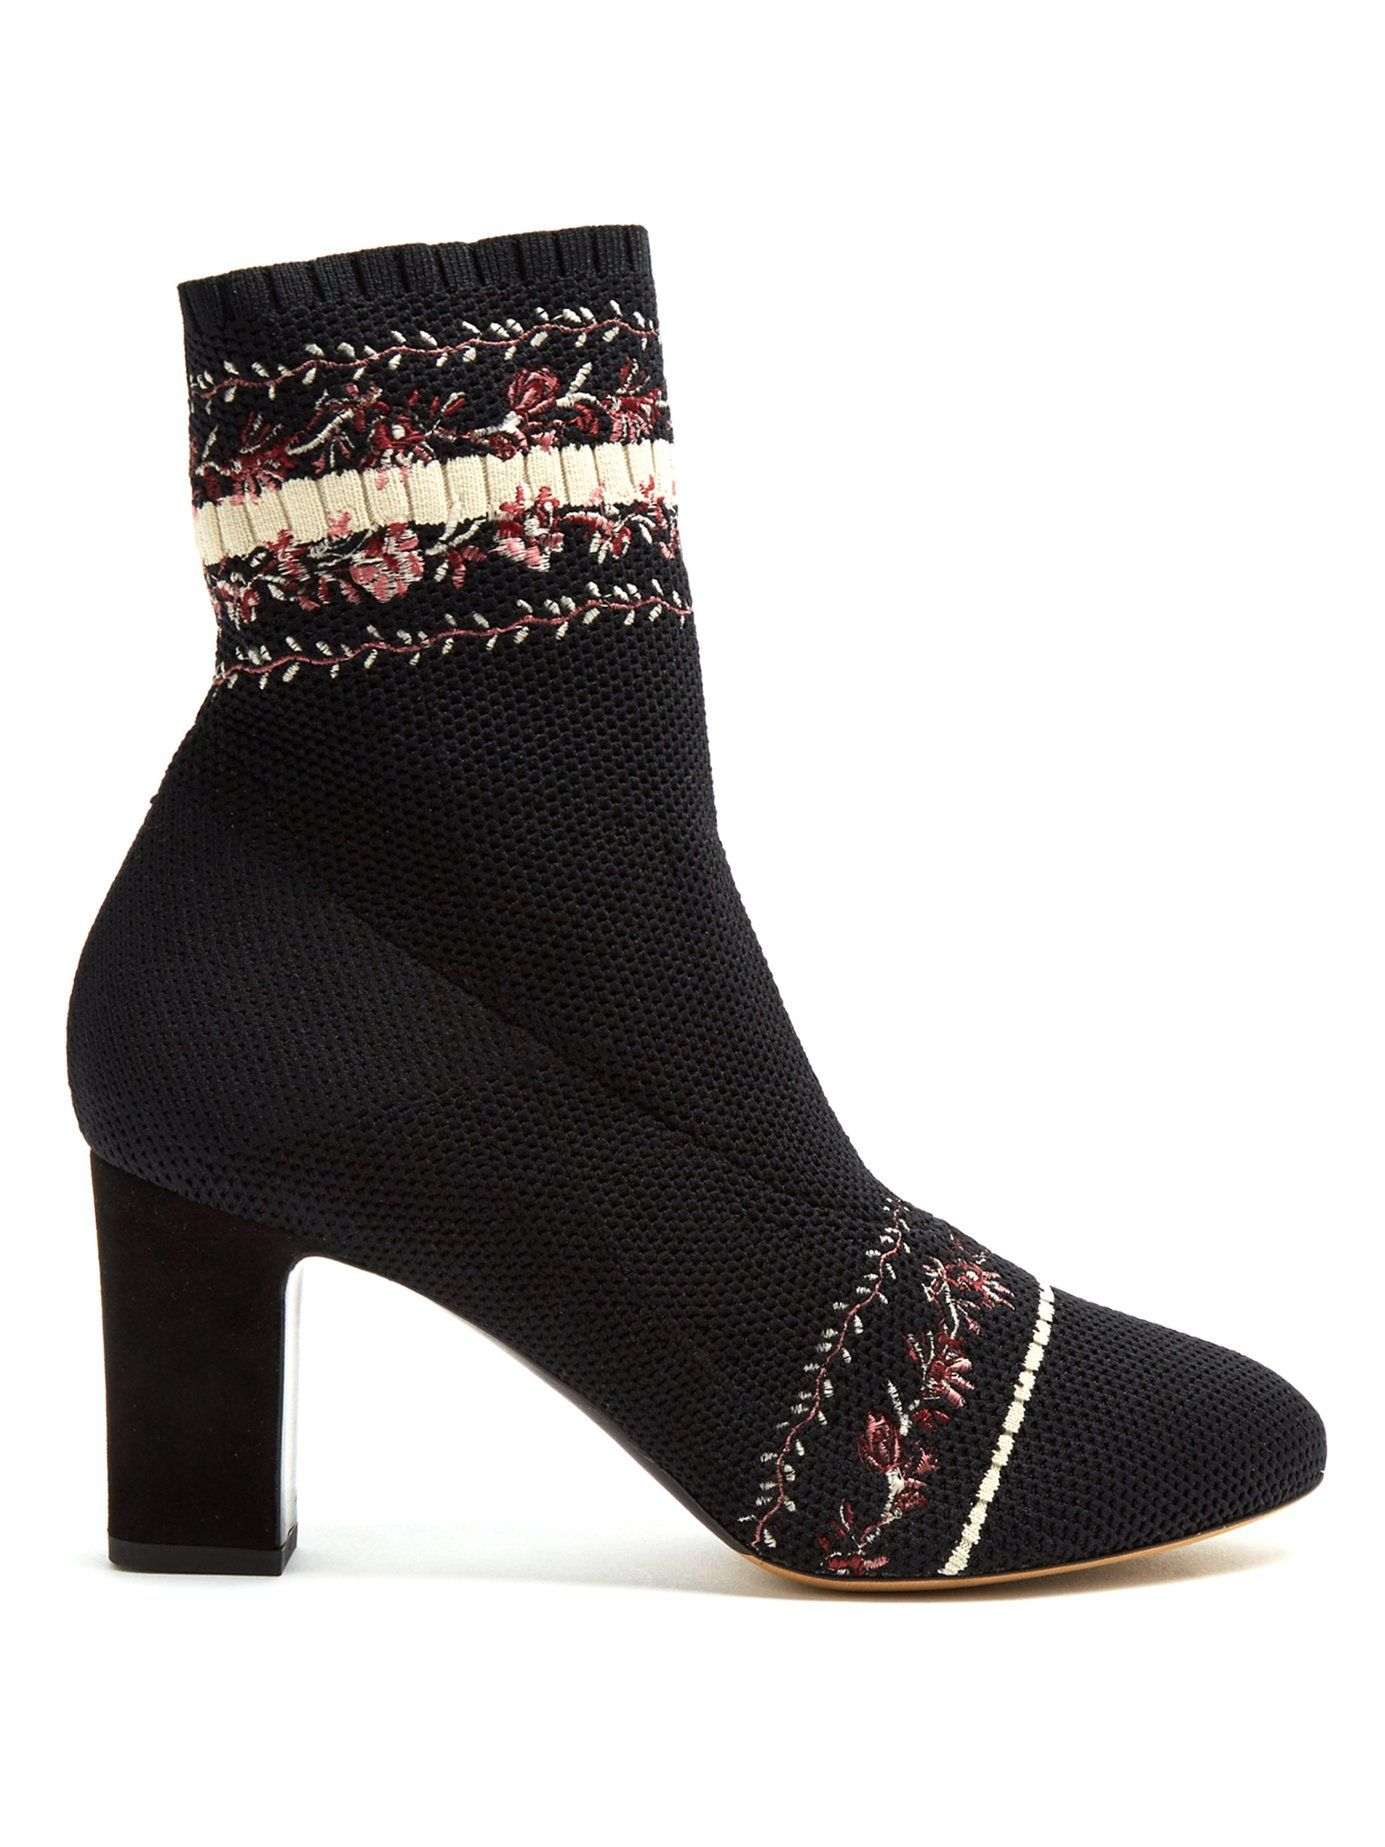 Excellent Cheap Price Tabitha Simmons Anna floral-embroidery sock ankle boot Browse Online Sale Cheap acAFNRjaXS